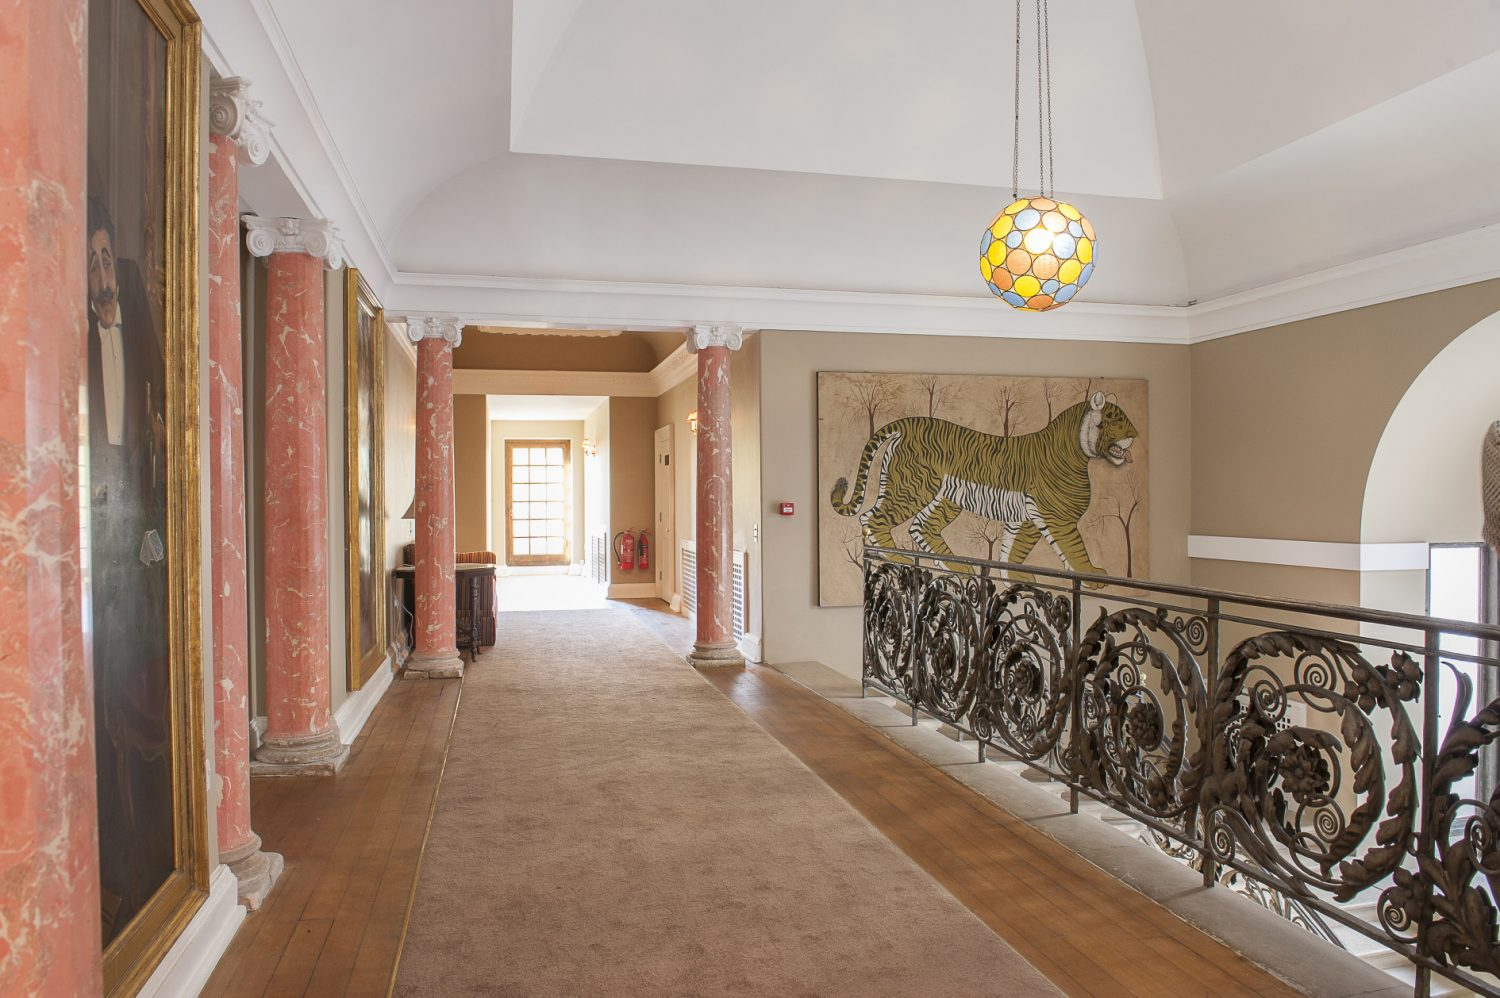 The landing area with pink marble columns